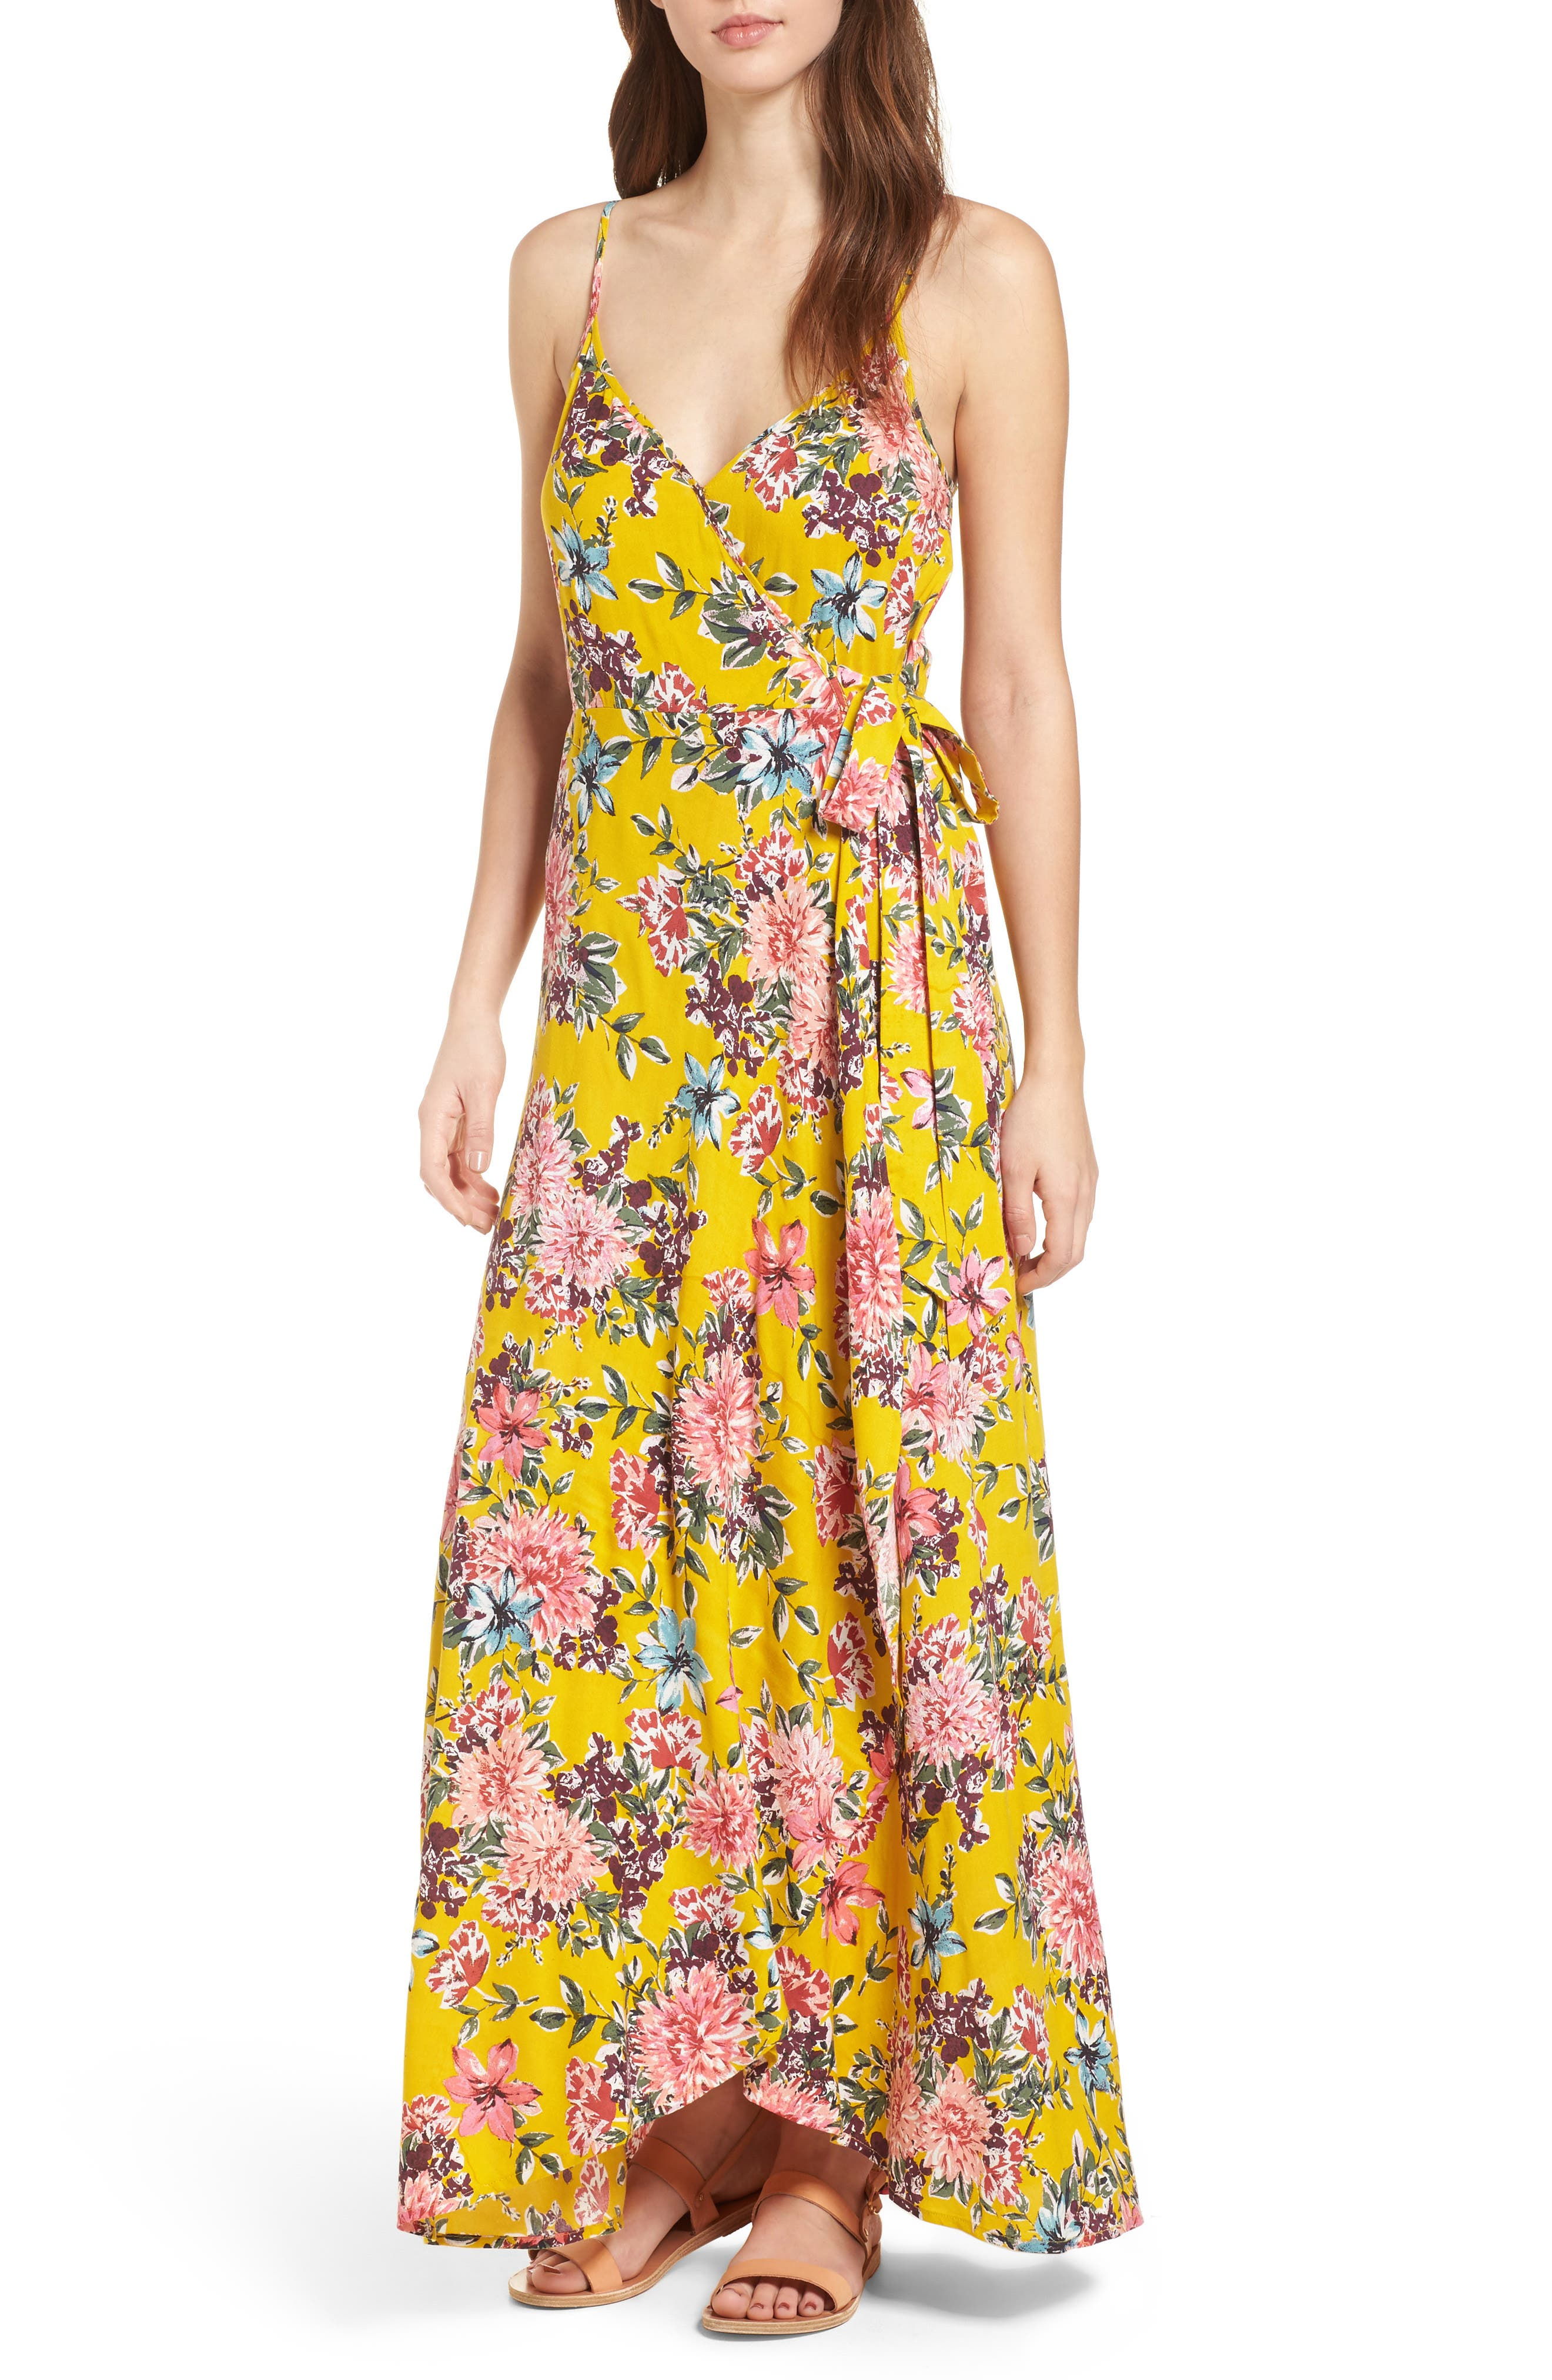 Alternate Image 1 Selected - Band of Gypsies Chrysanthemum Wrap Front Dress